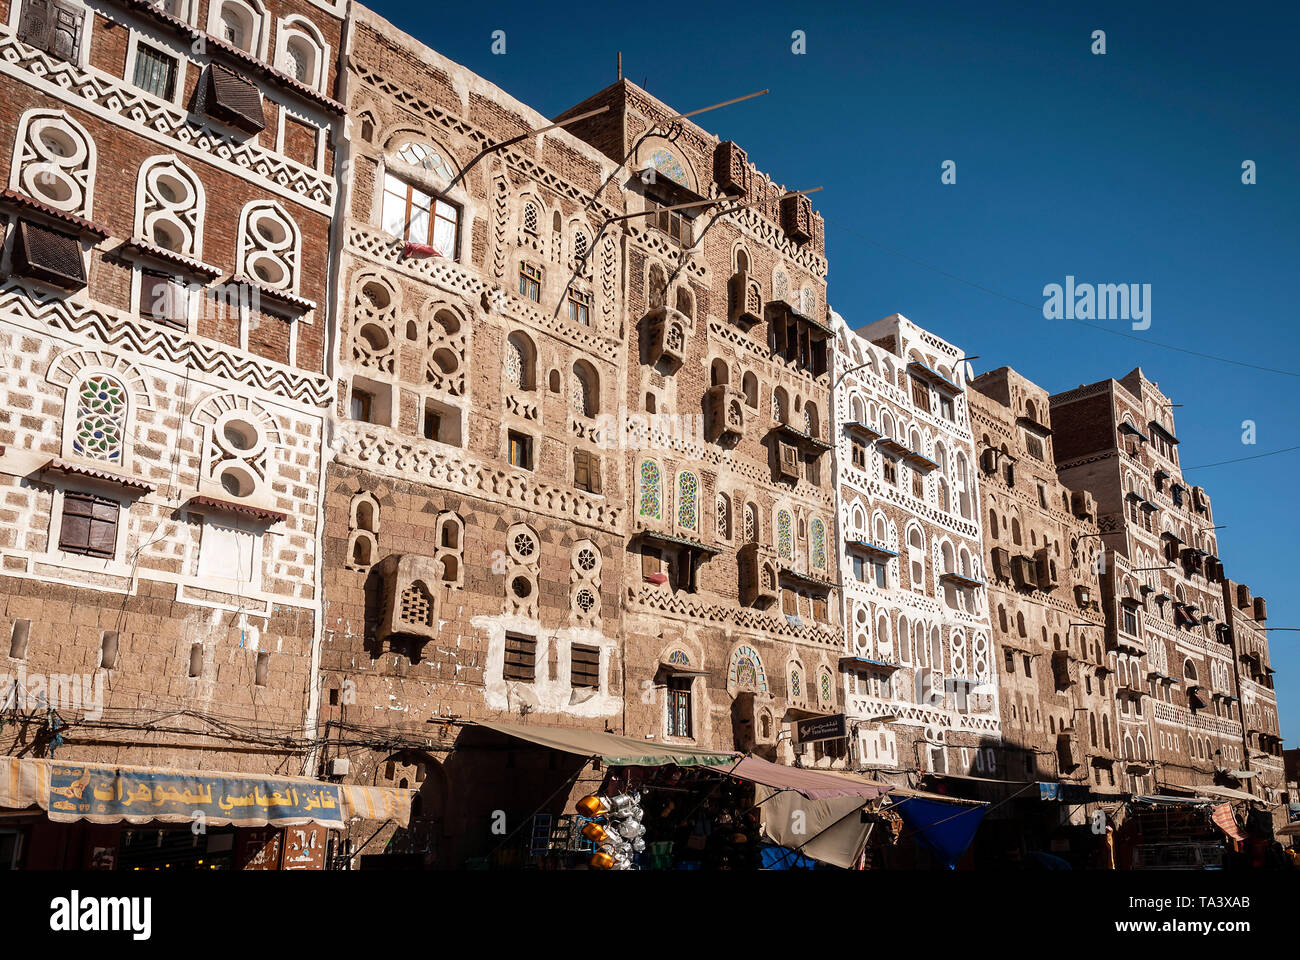 street scene and local heritage architecture buildings in old town of sanaa yemen - Stock Image